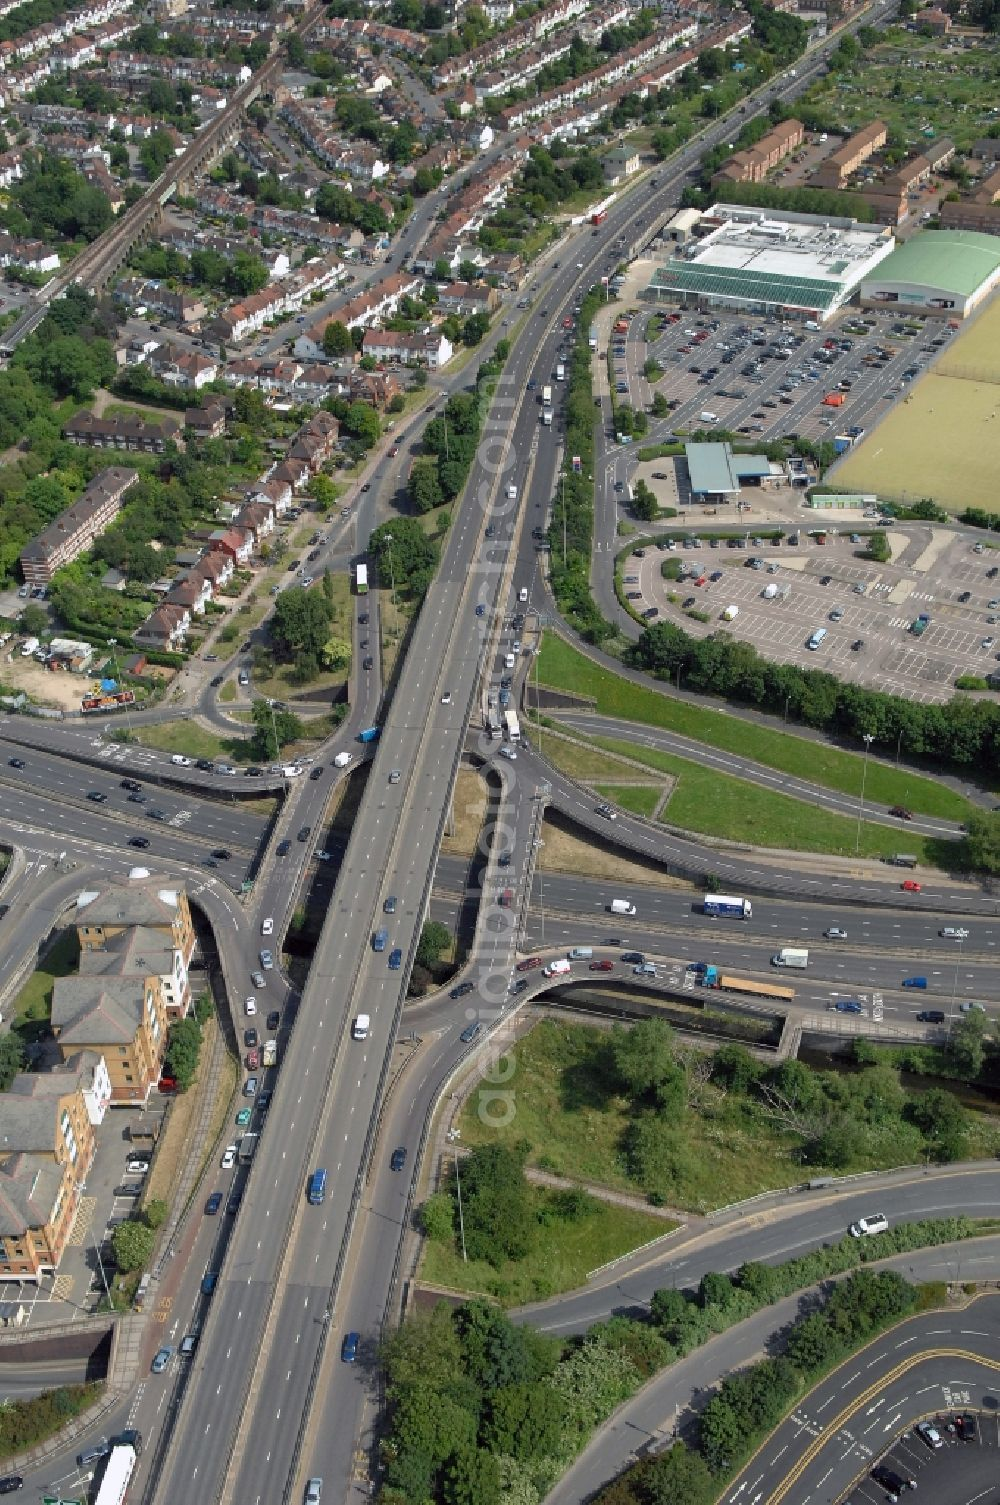 London from the bird's eye view: View at the Brent Cross flyover interchange in the district Barnet in London in the county of Greater London in the UK. Here in North West London the motorways A41 Hendon Way and the A406 North Circular Road get connected with each other